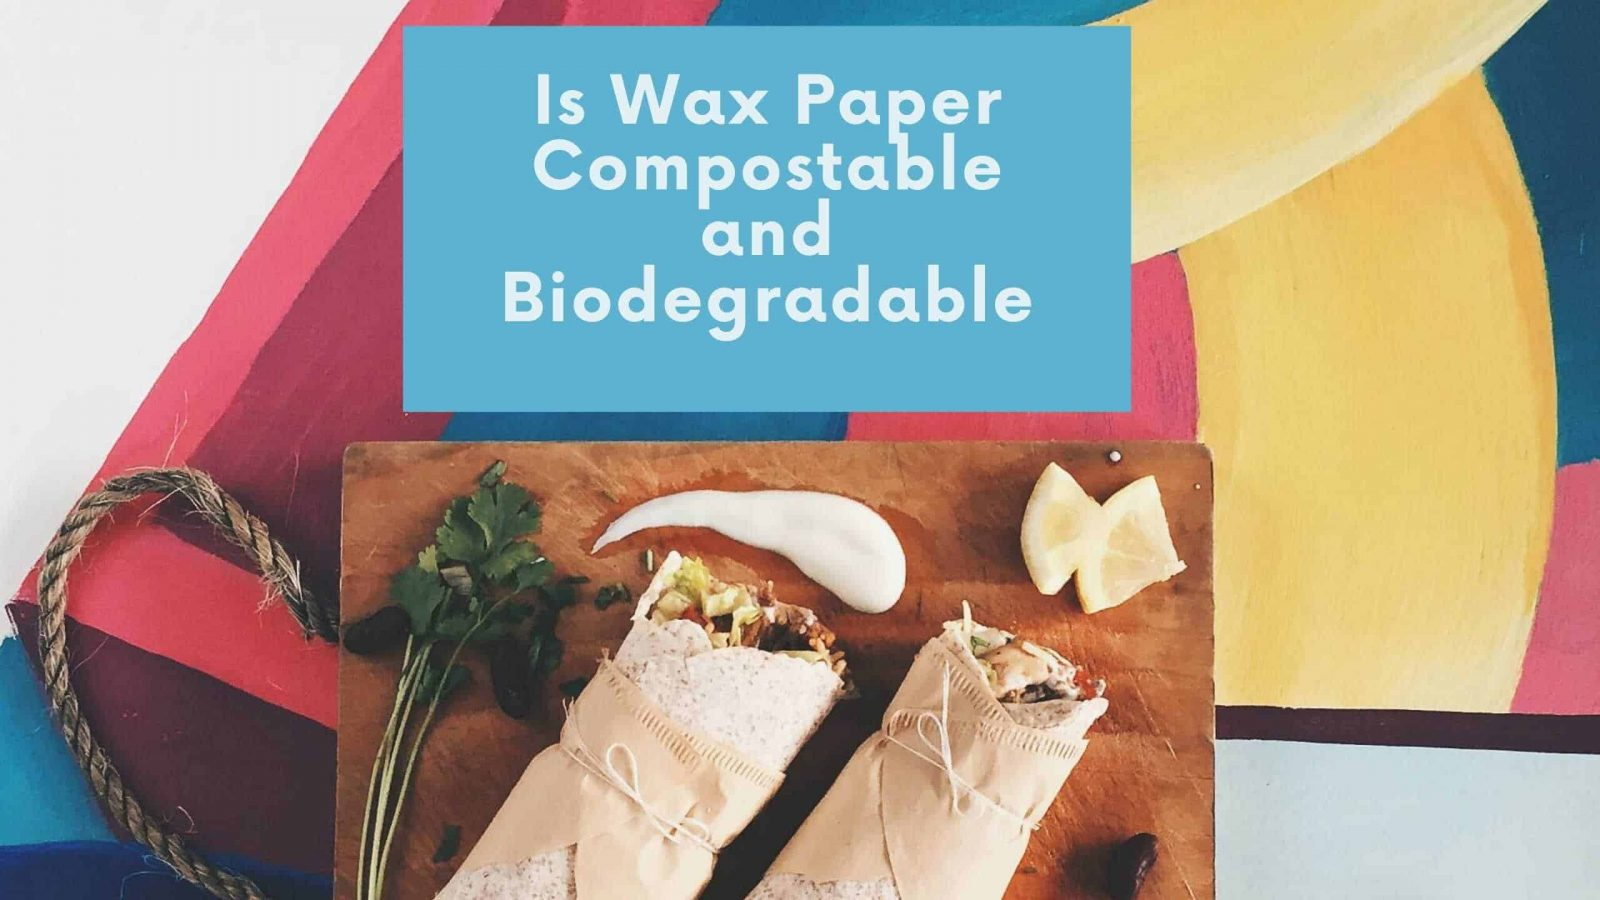 Is Wax Paper Compostable and Biodegradable?